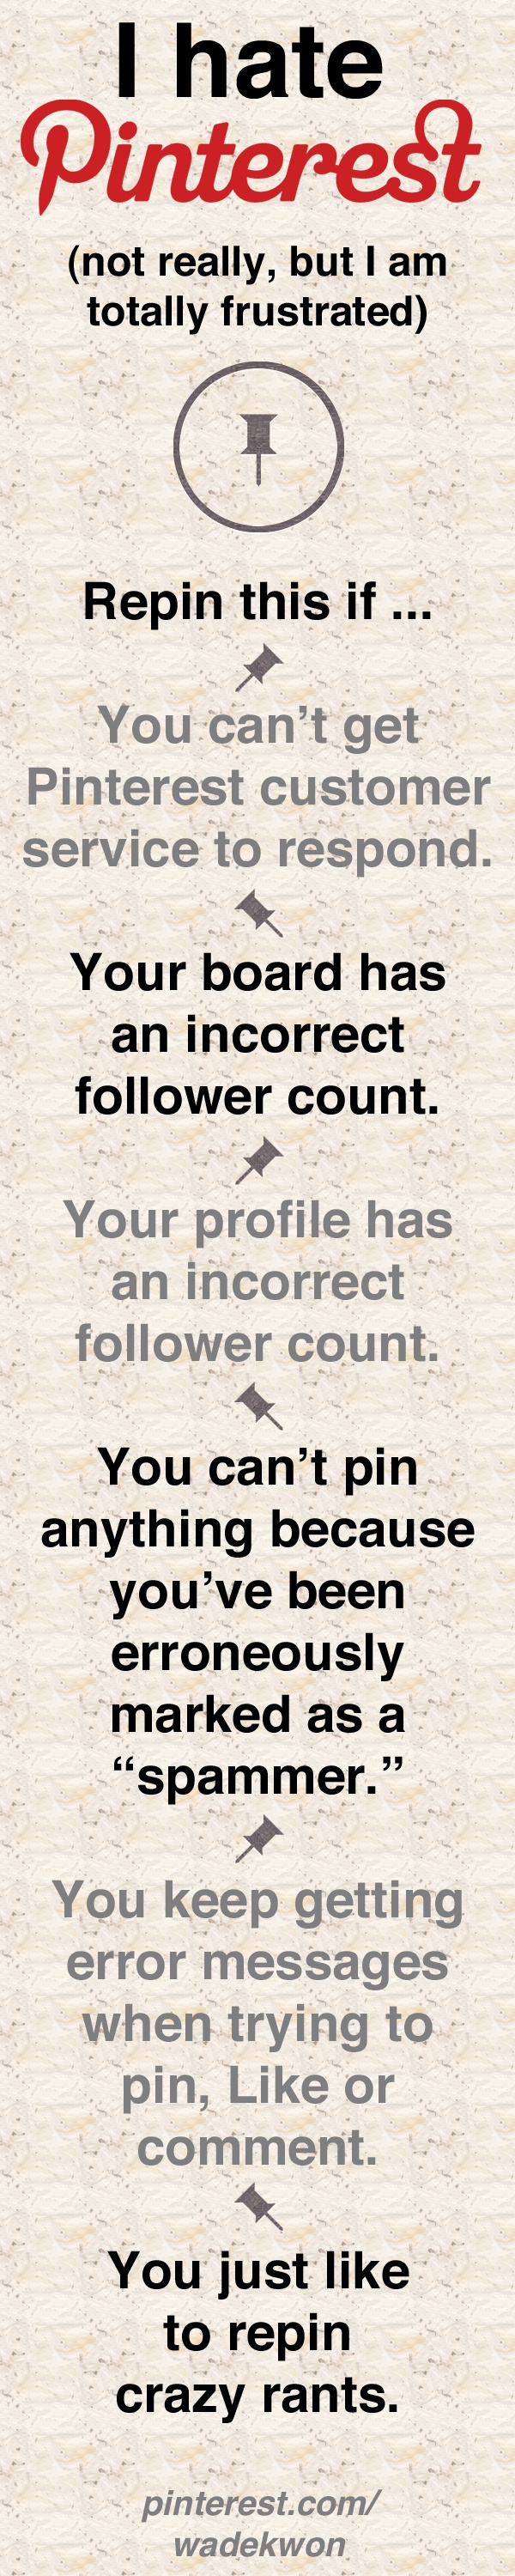 best 25 delete a pin ideas only on pinterest types of body